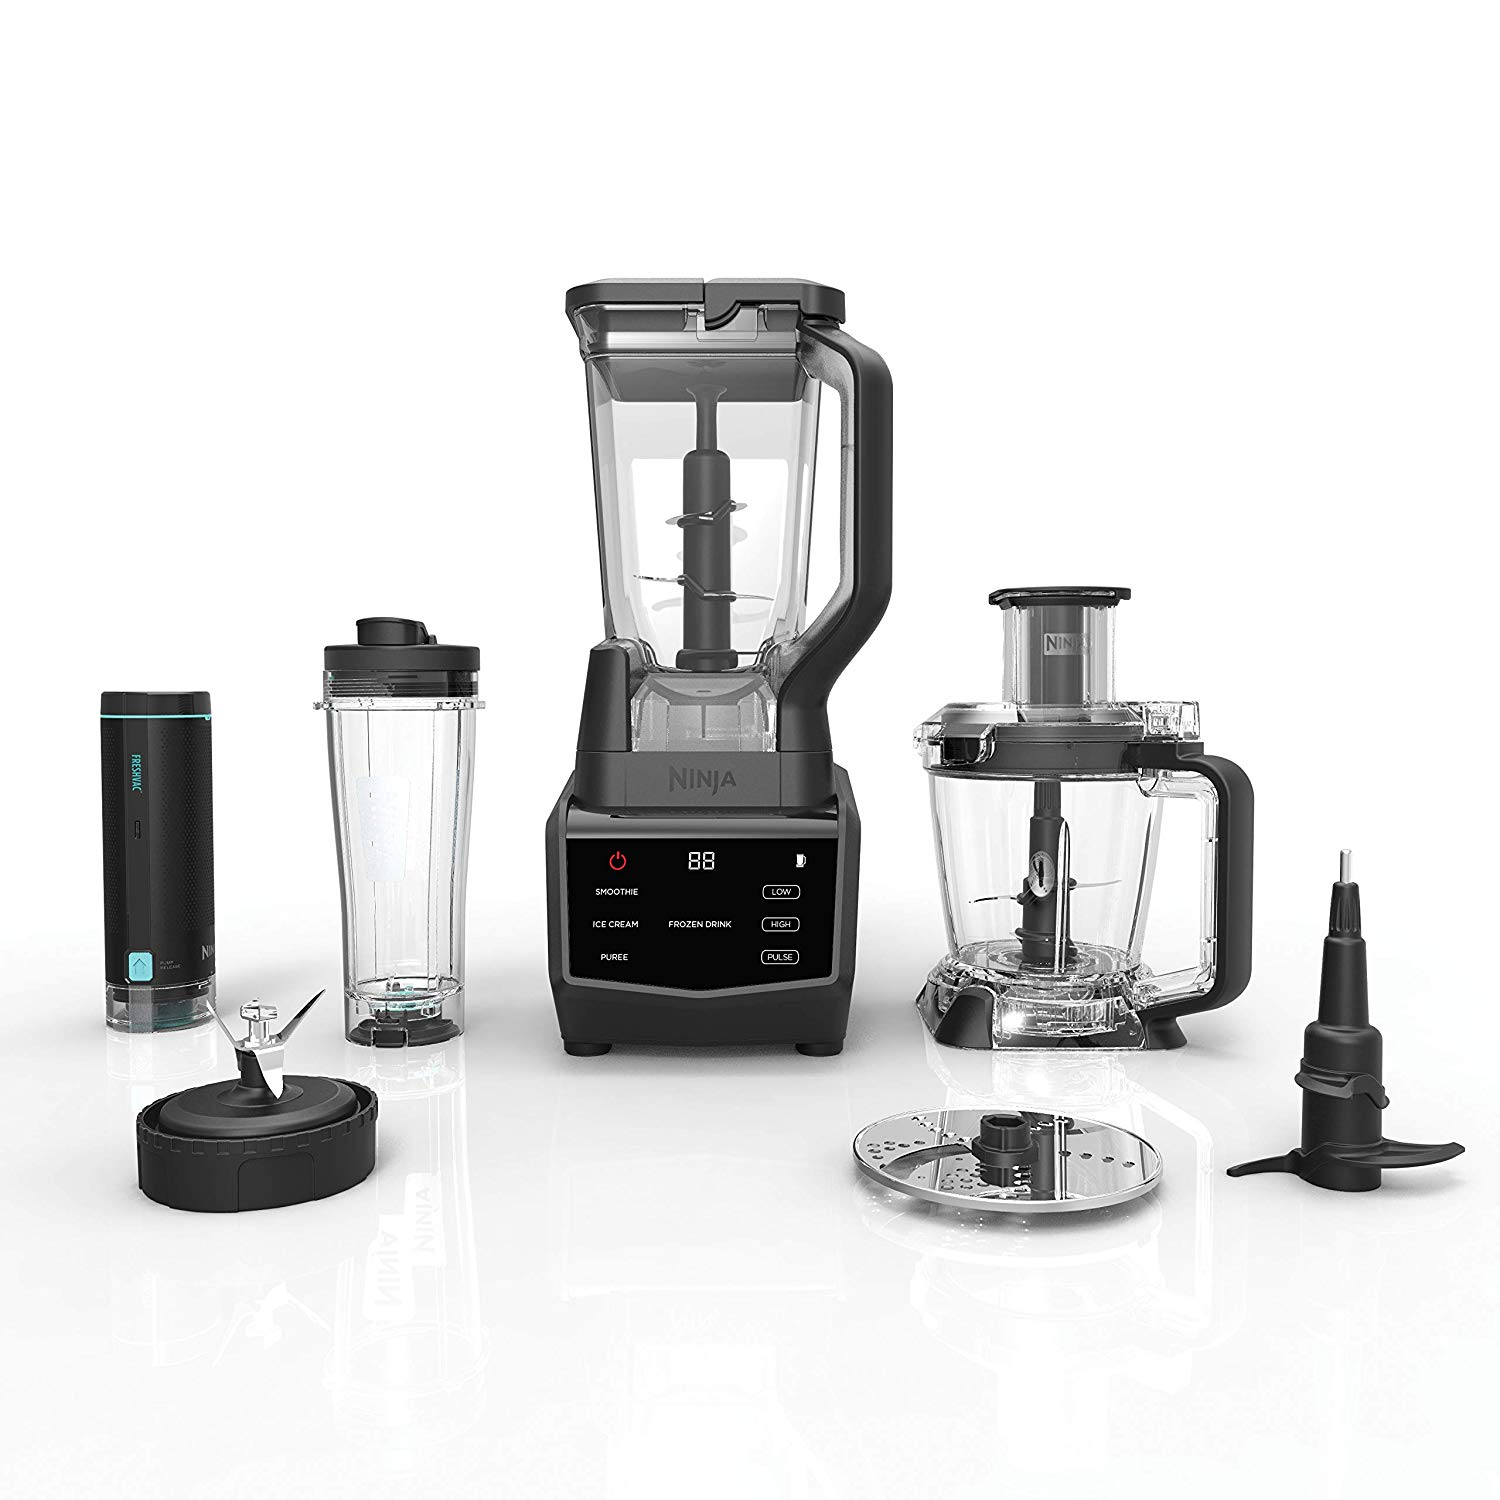 Ninja Smart Screen Blender and Food Processor